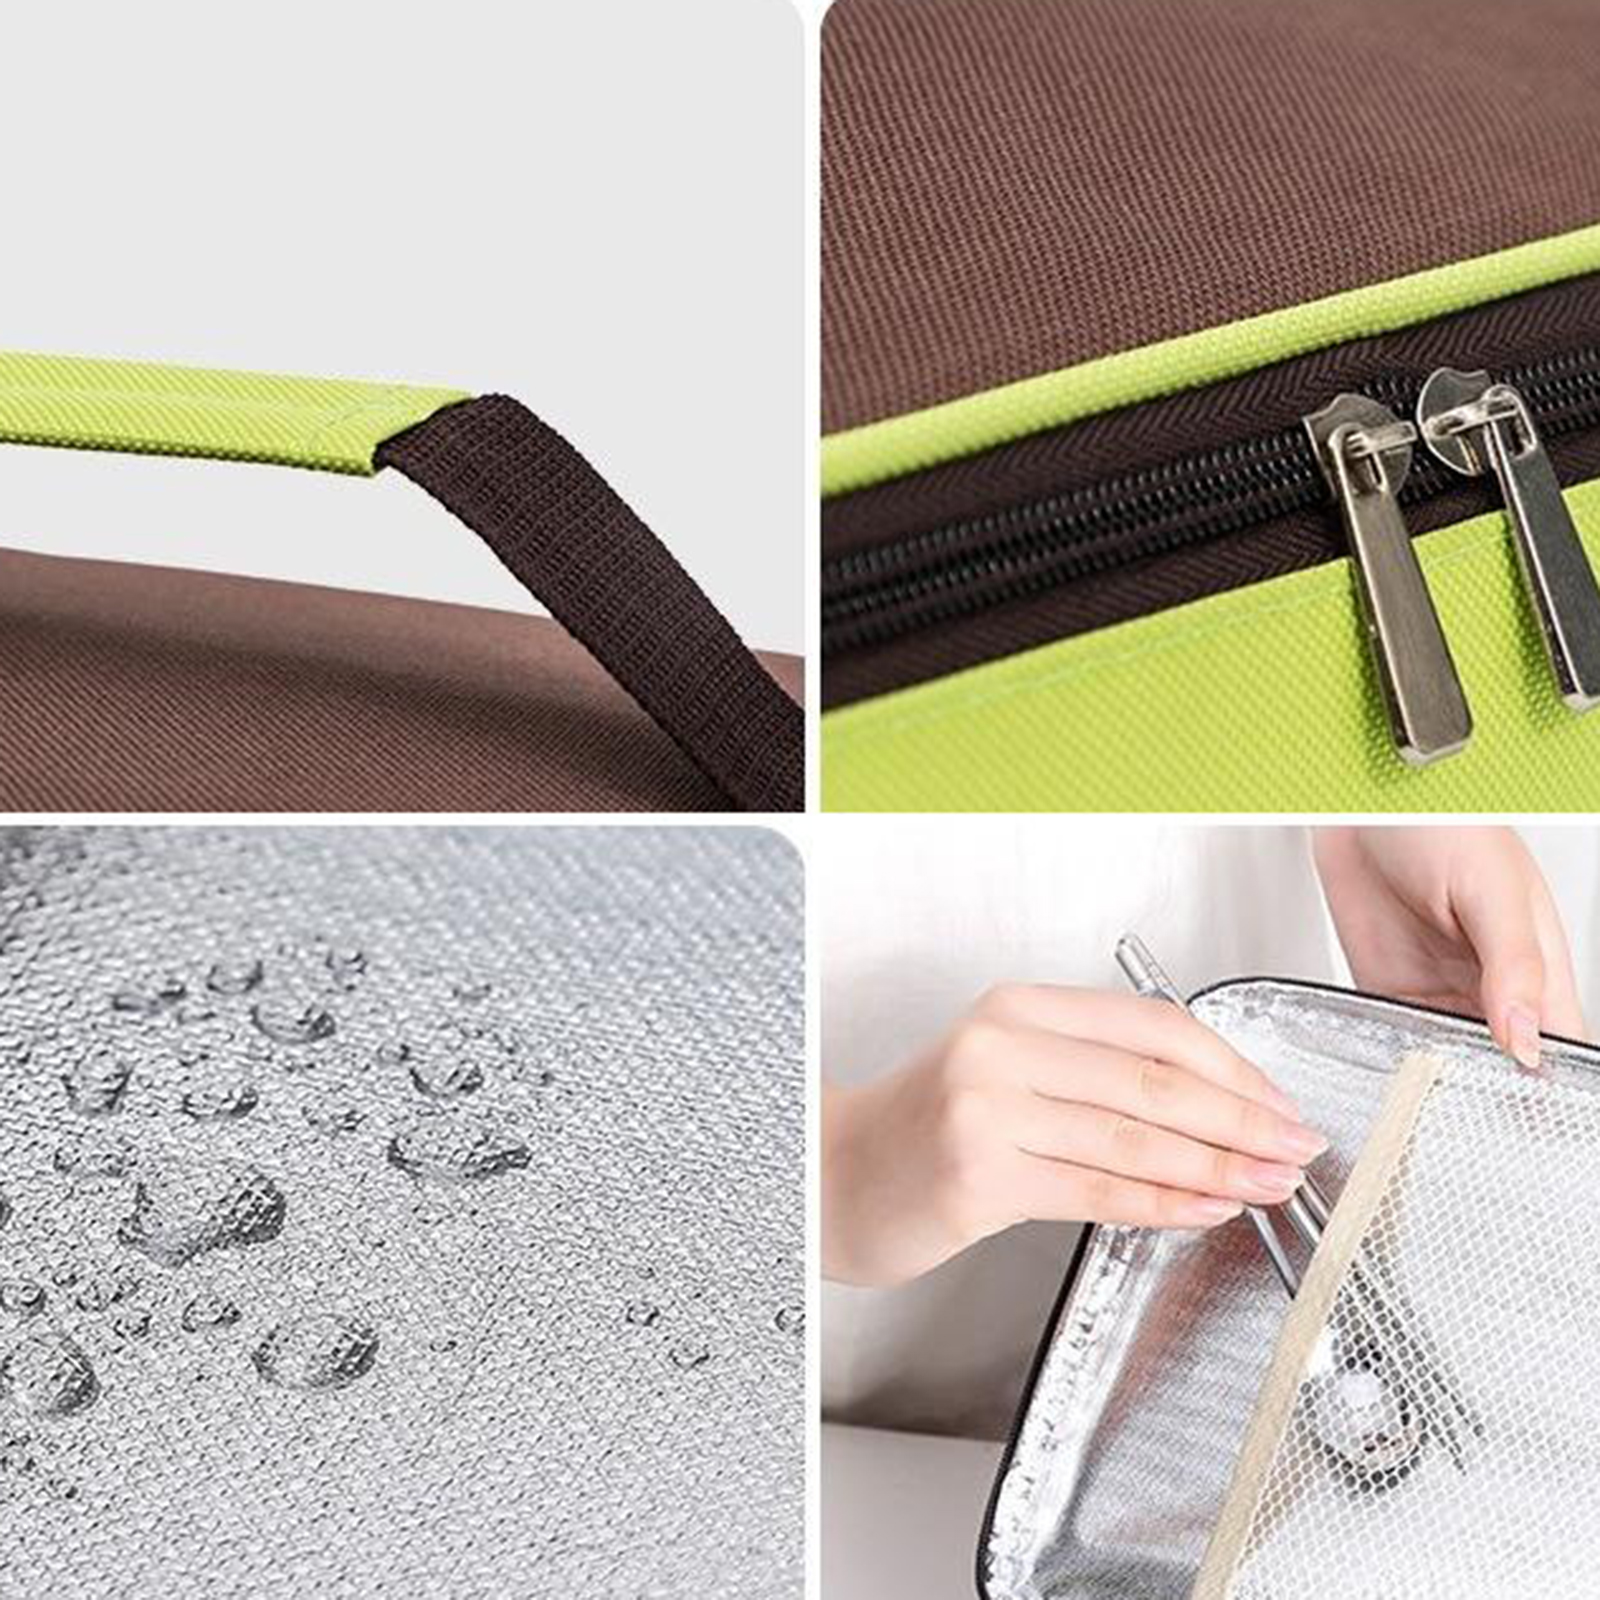 Portable Lunch Bags Insulated Cool Tote Bag for Men Women Work School Travel